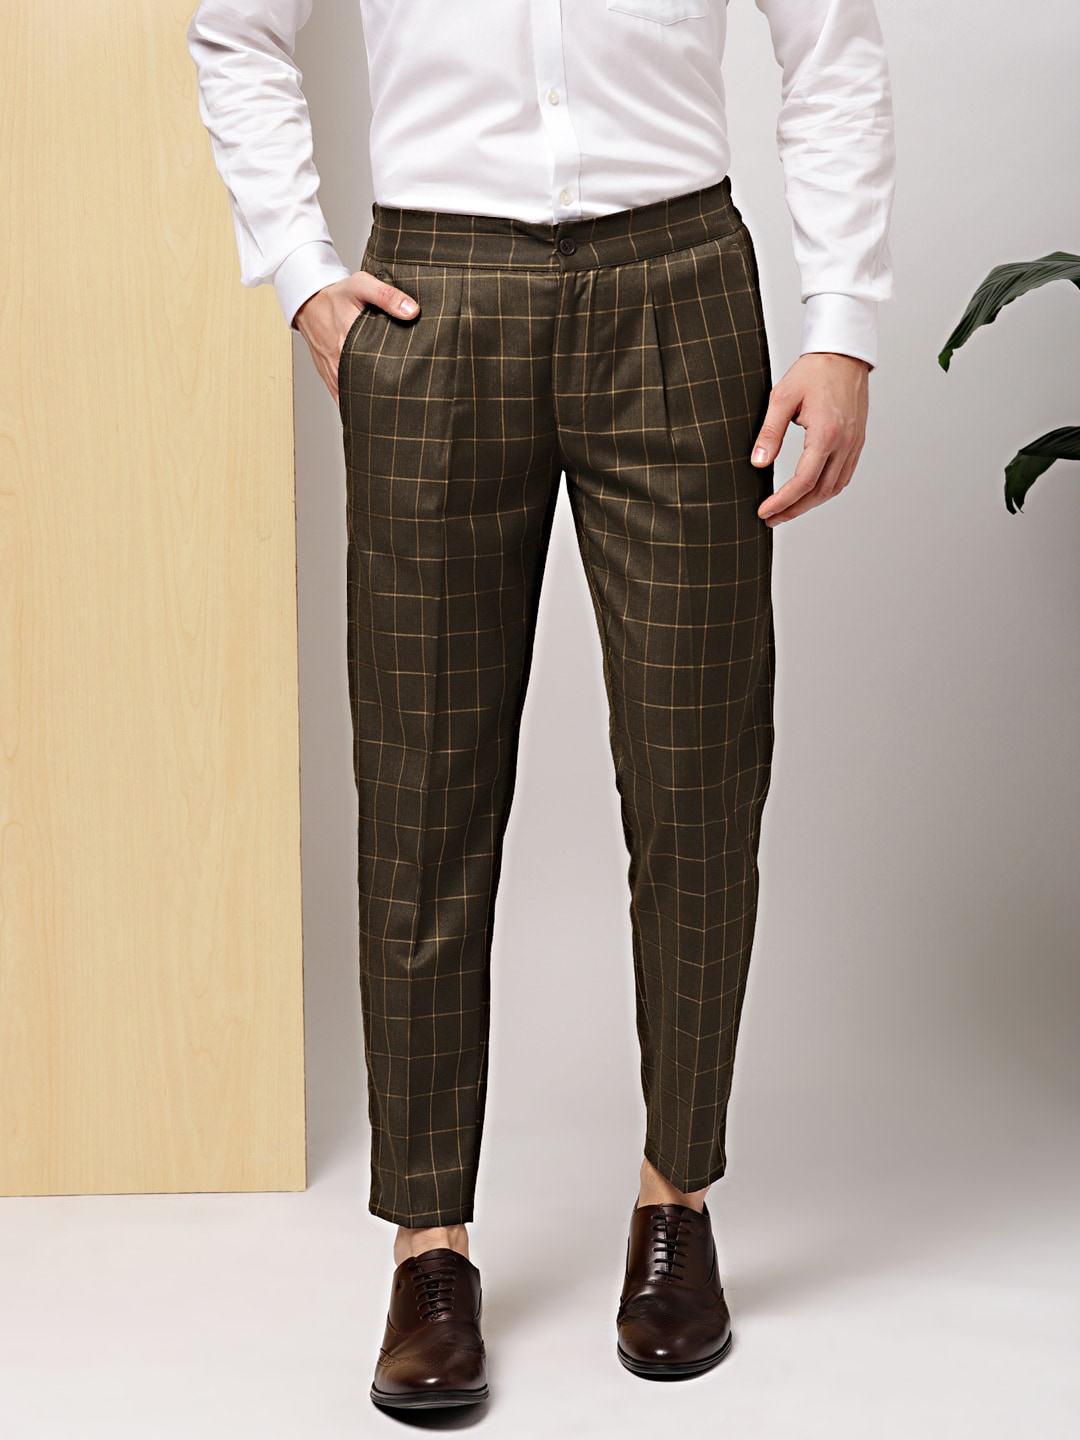 33fb3734e21 Pleated Trousers Men - Buy Pleated Trousers Men online in India